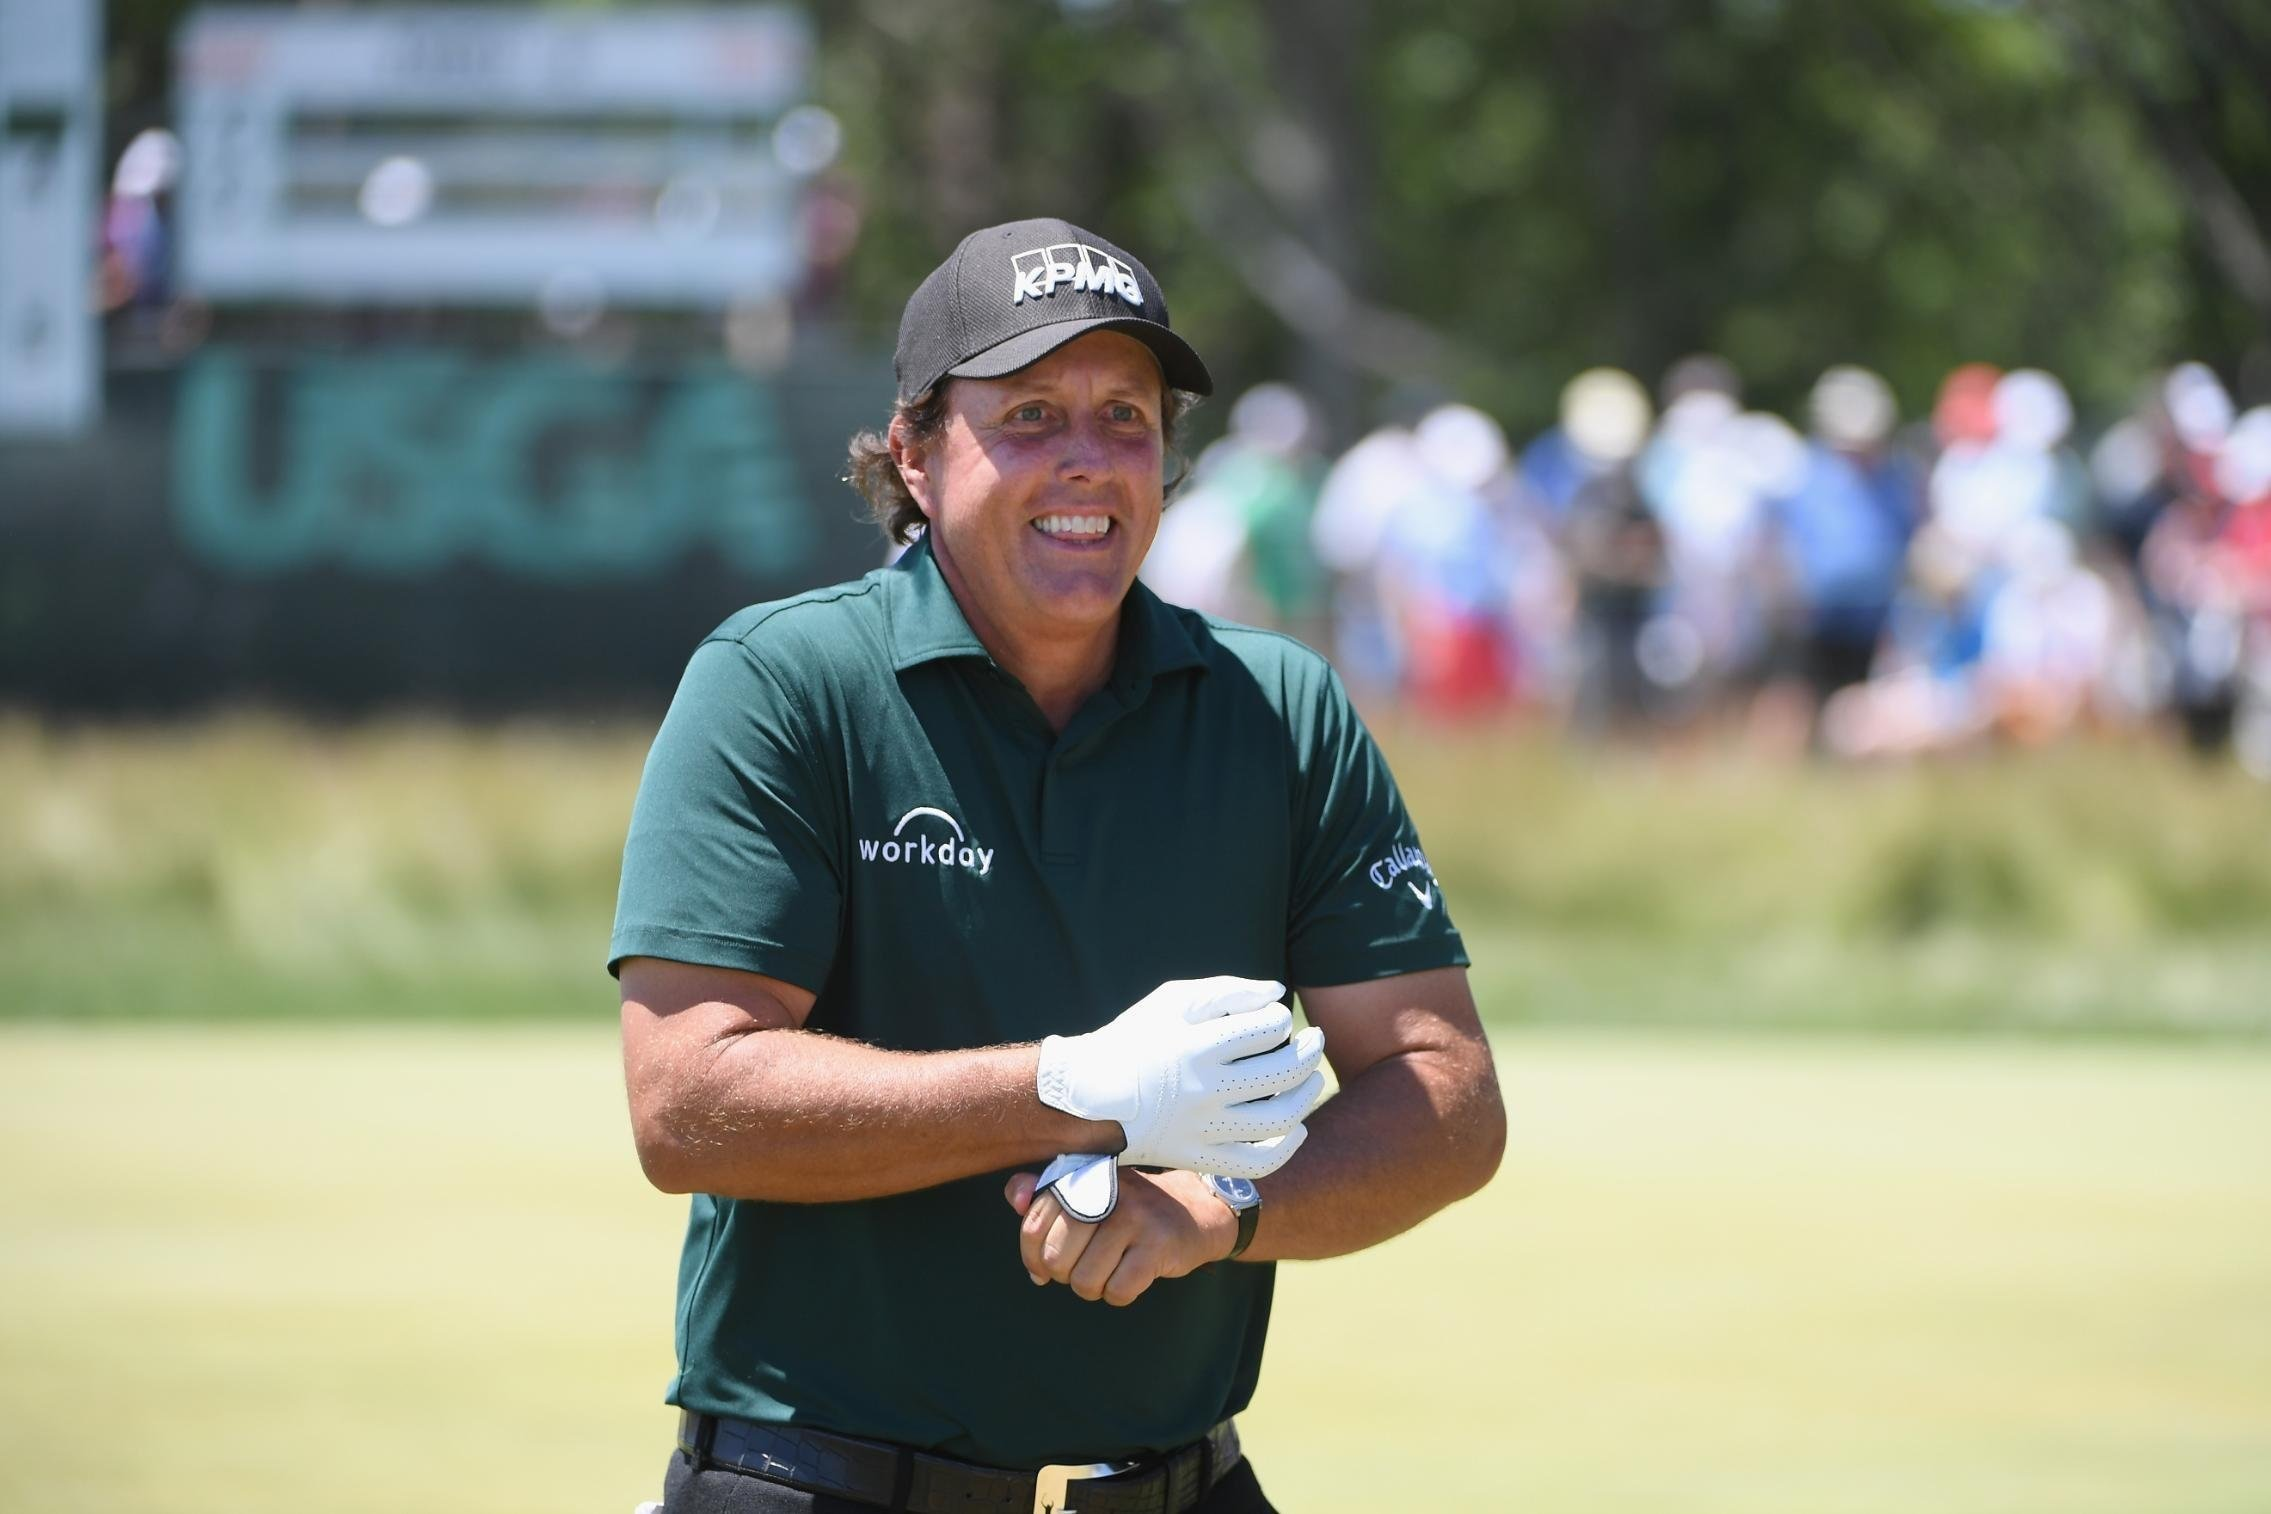 Phil Mickelson has moment of madness at US Open